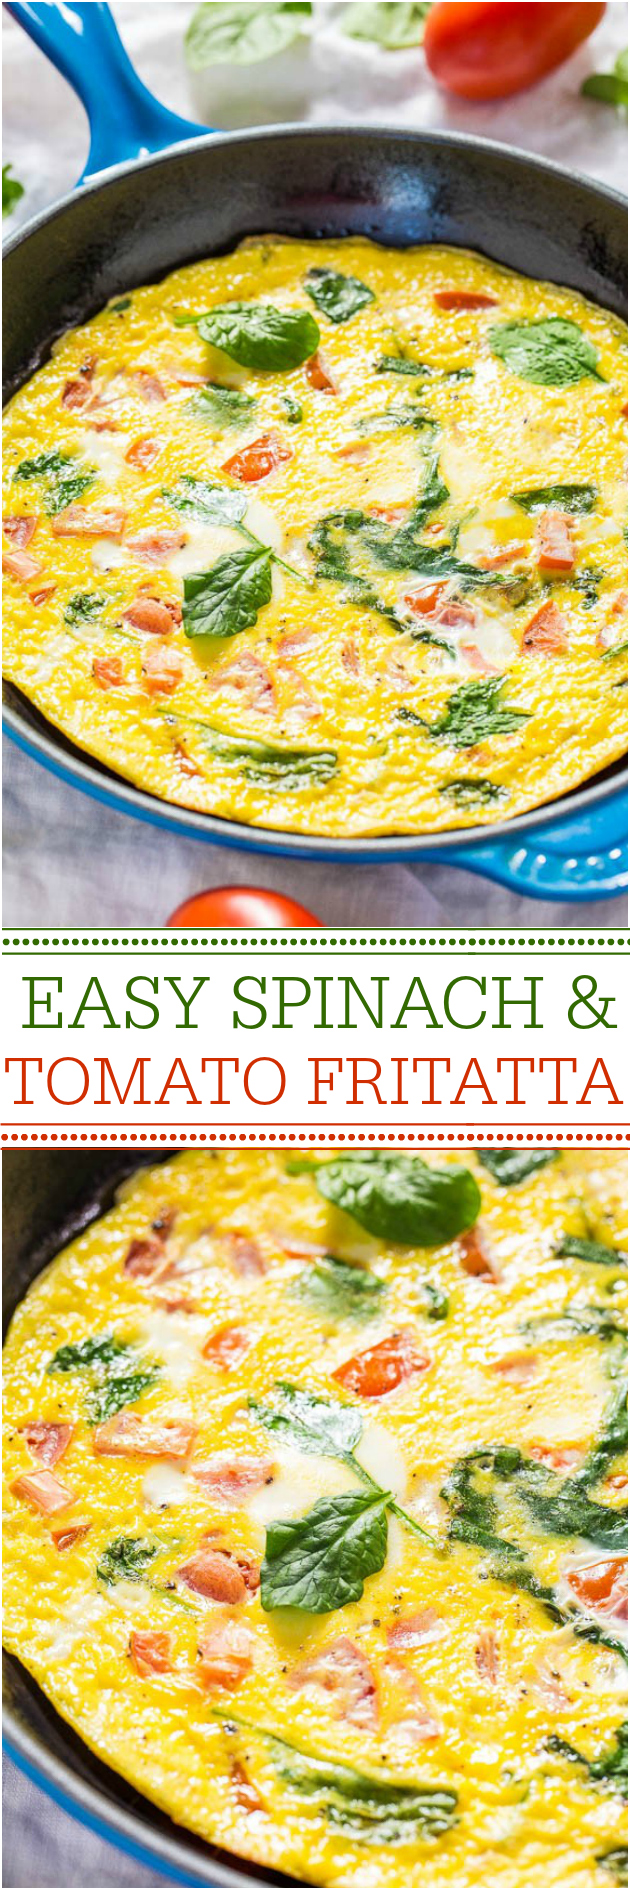 Easy Spinach and Tomato Frittata - Ready in 10 minutes and healthy! Perfect for any meal!! Great for using up odds-and-ends veggies, too!!